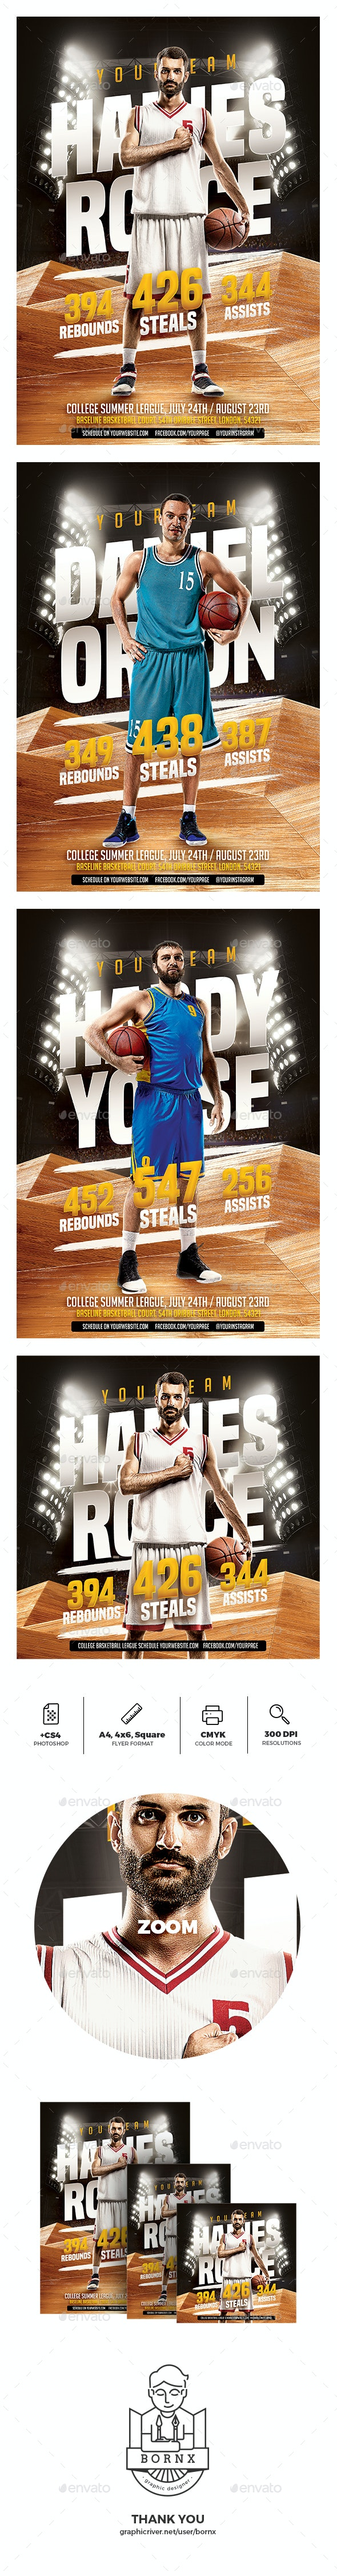 Basketball Player Flyer - Sports Events